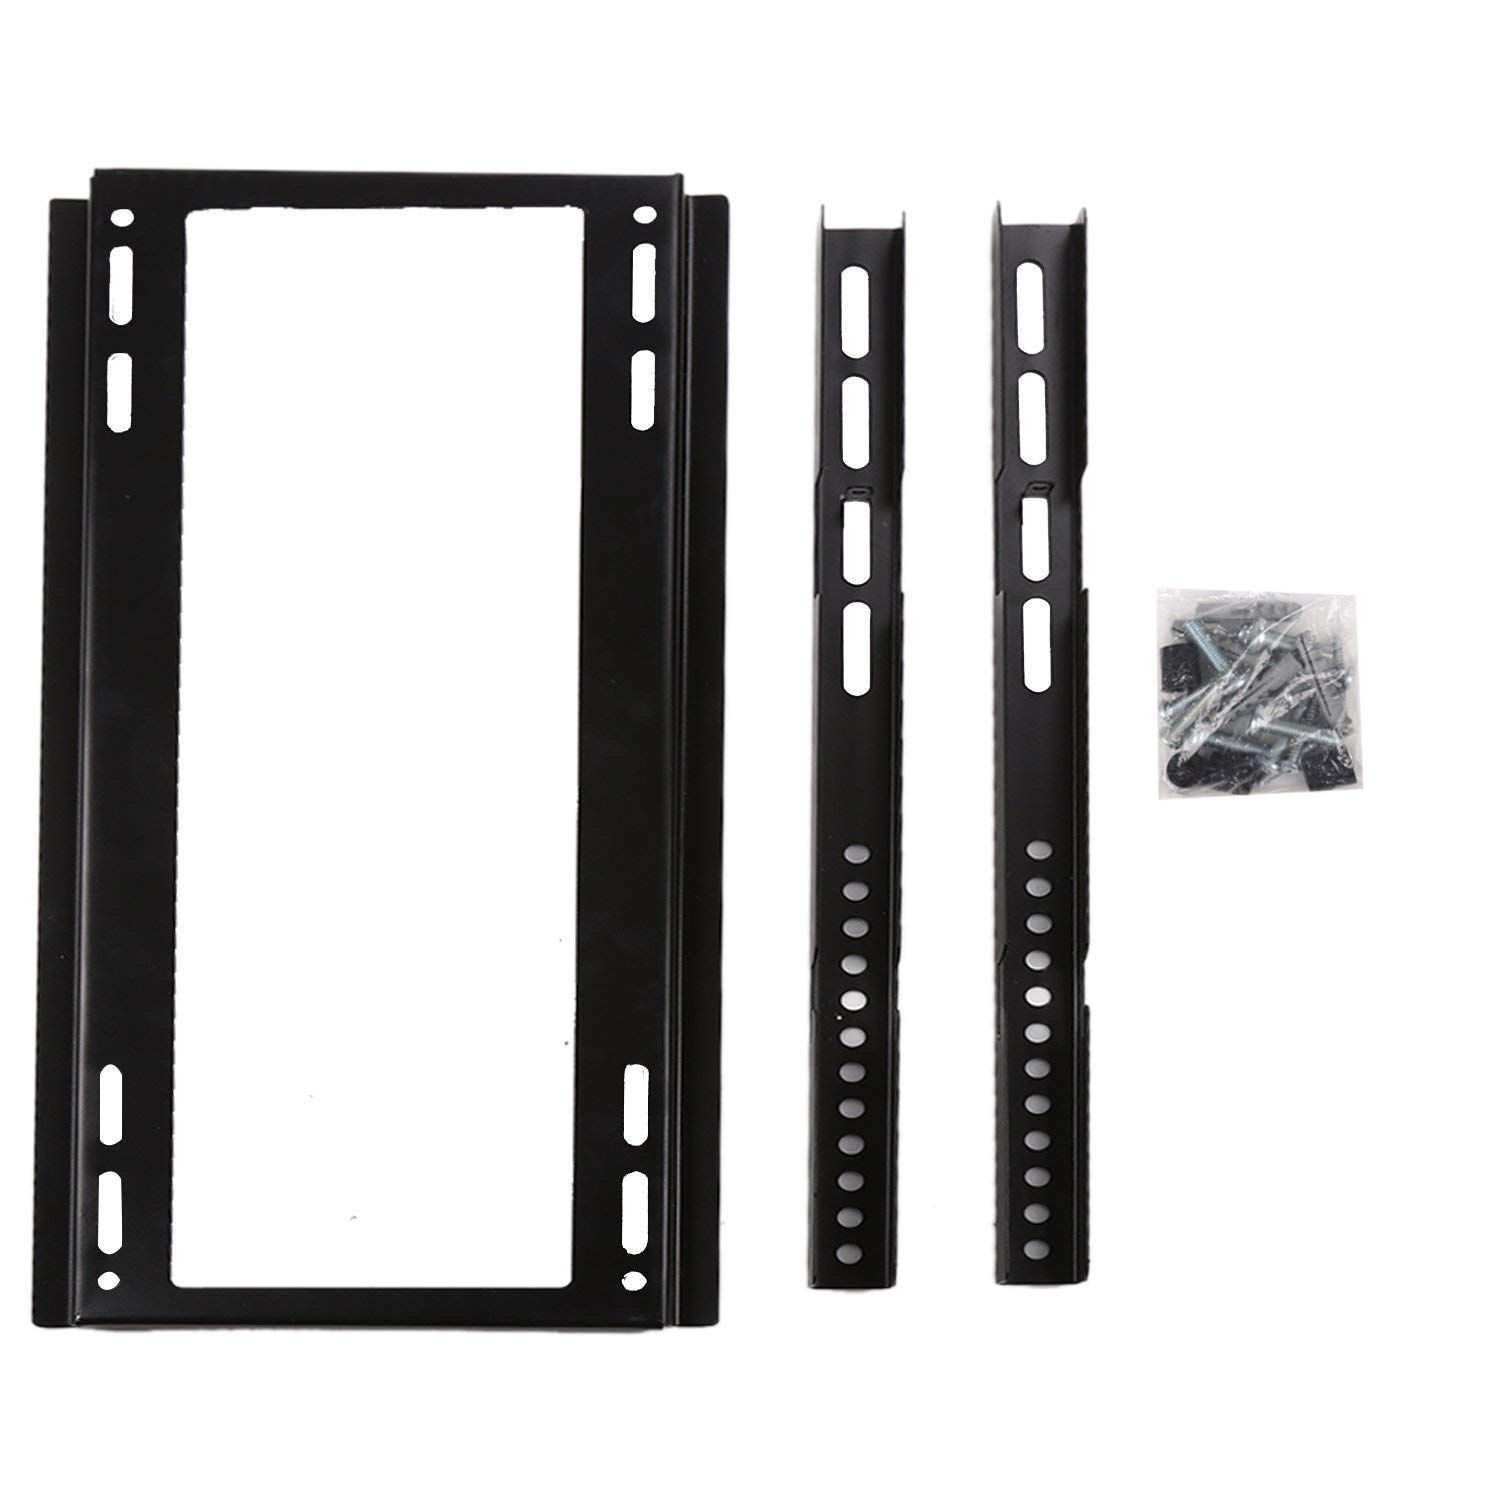 Buy Maxi Universal Wall Mount Stand For 26 inch To 55 inch